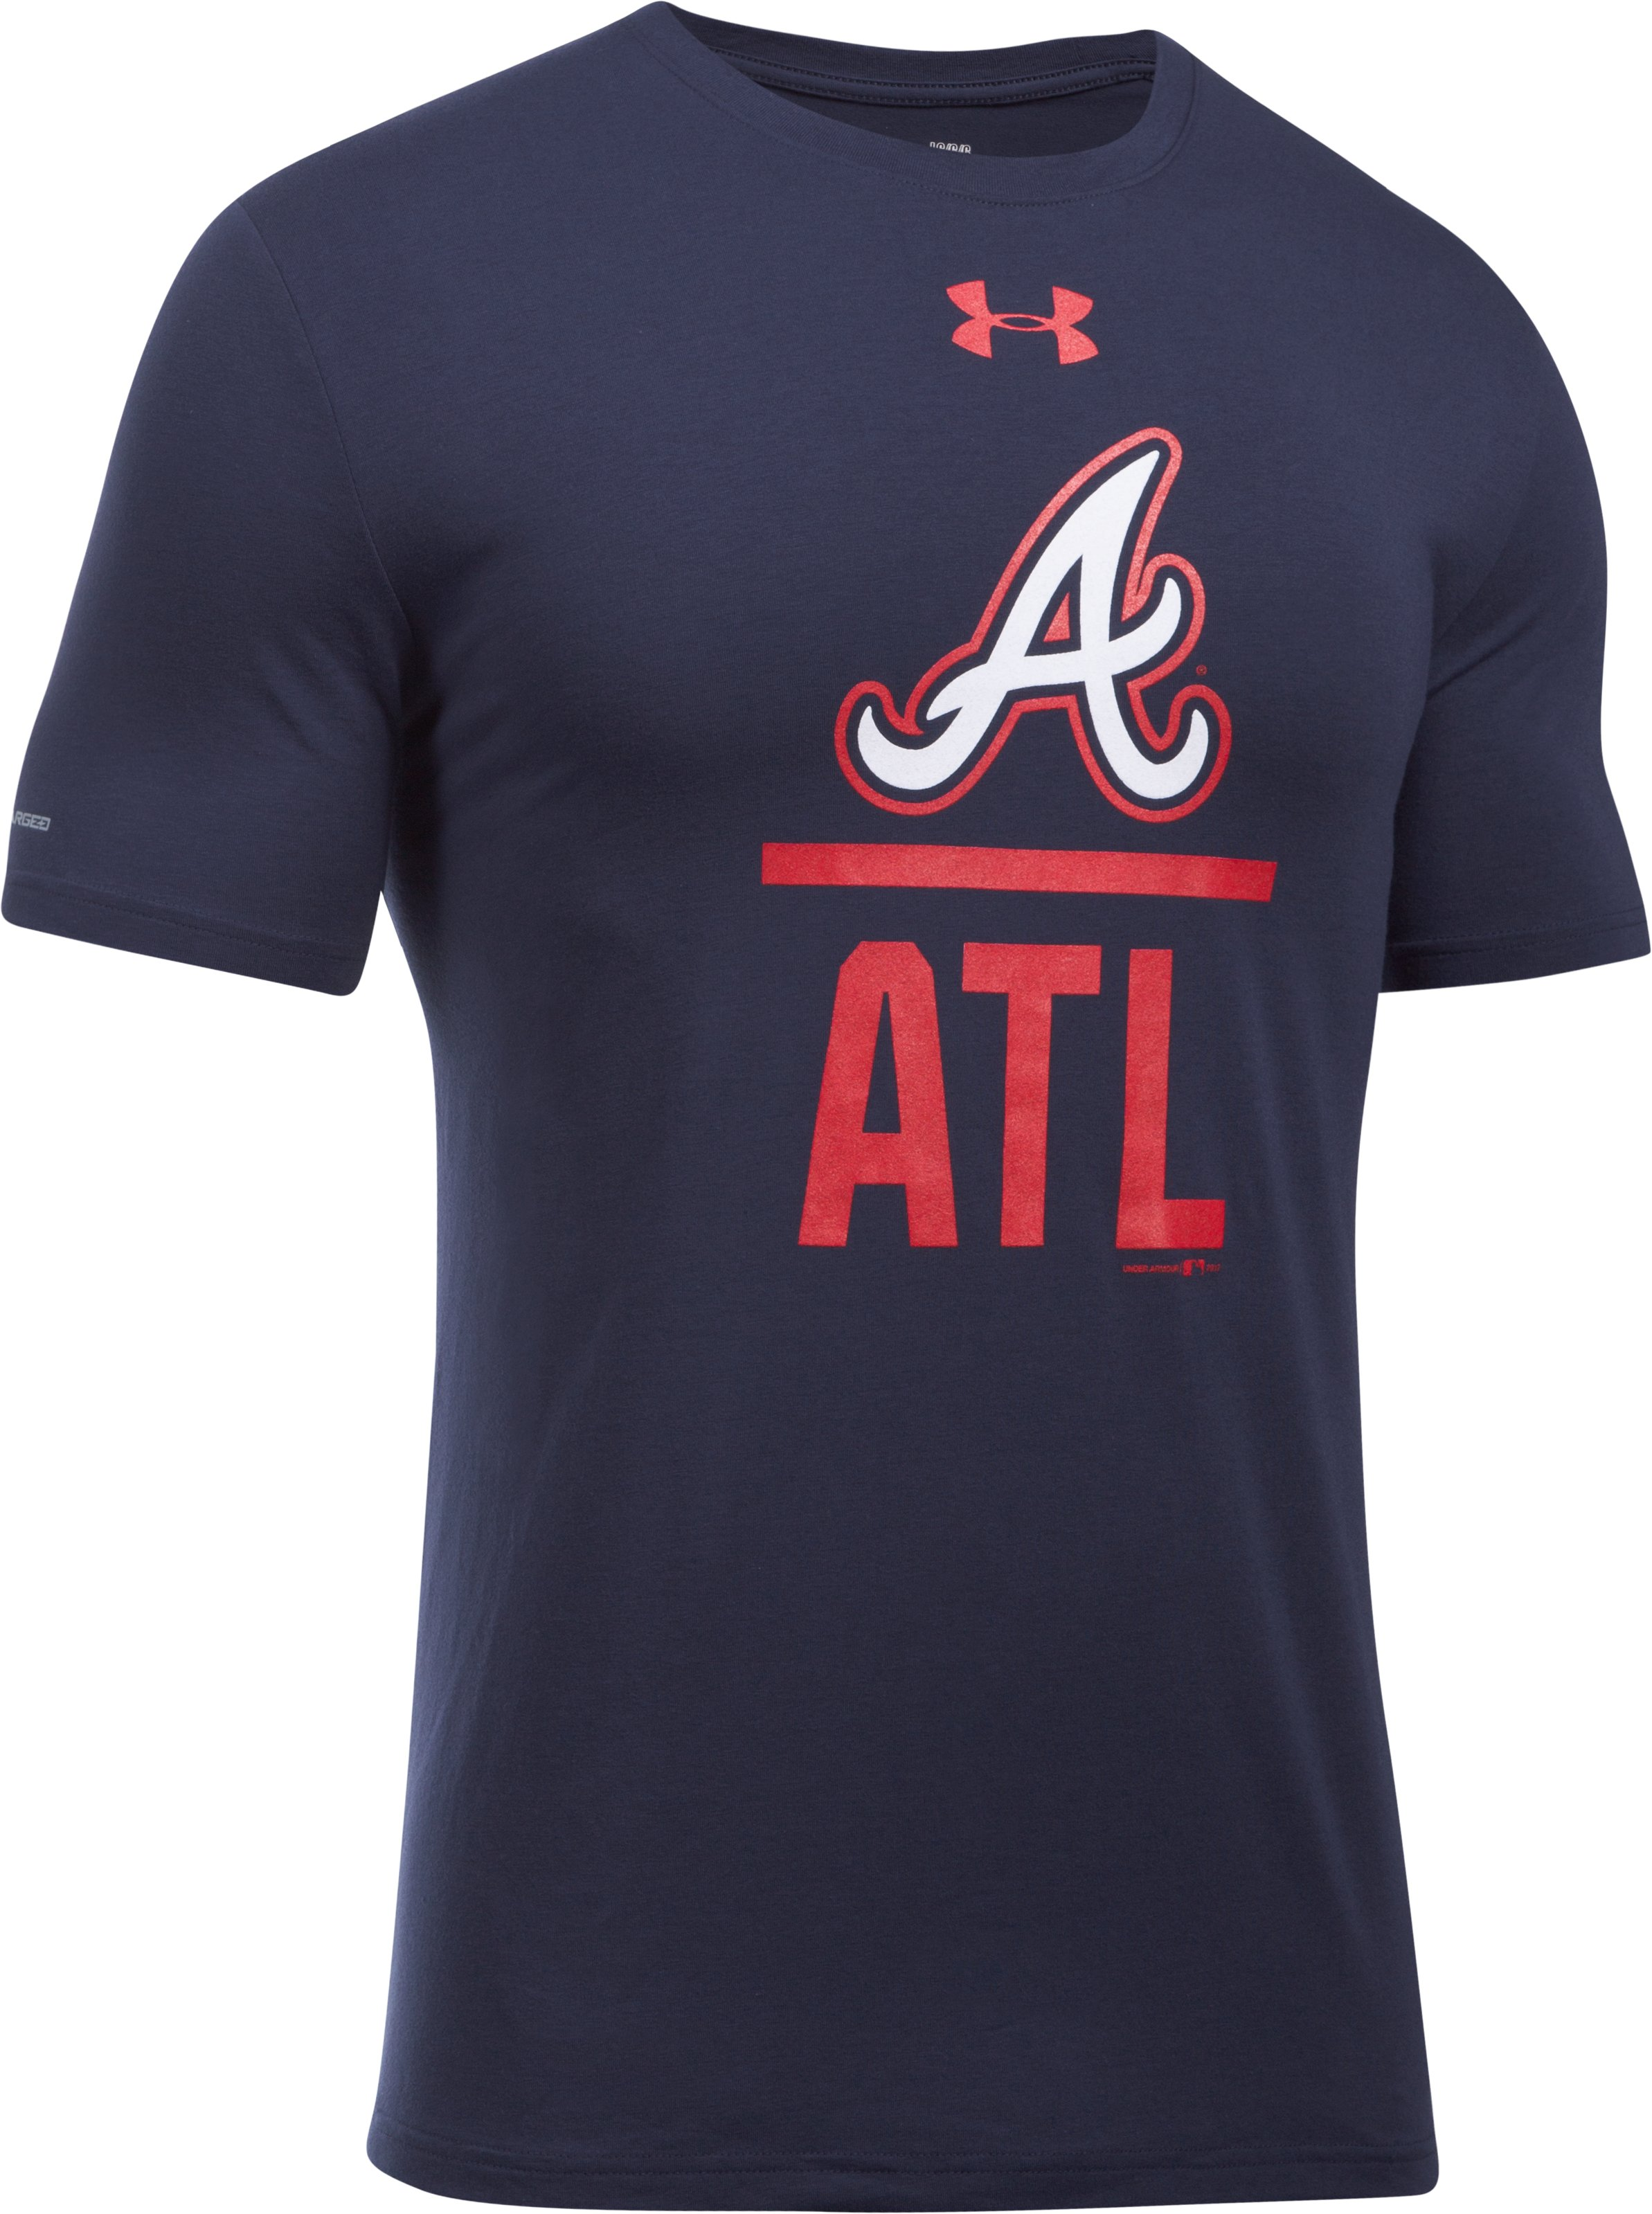 Men's Atlanta Braves Lockup T-Shirt, Midnight Navy,